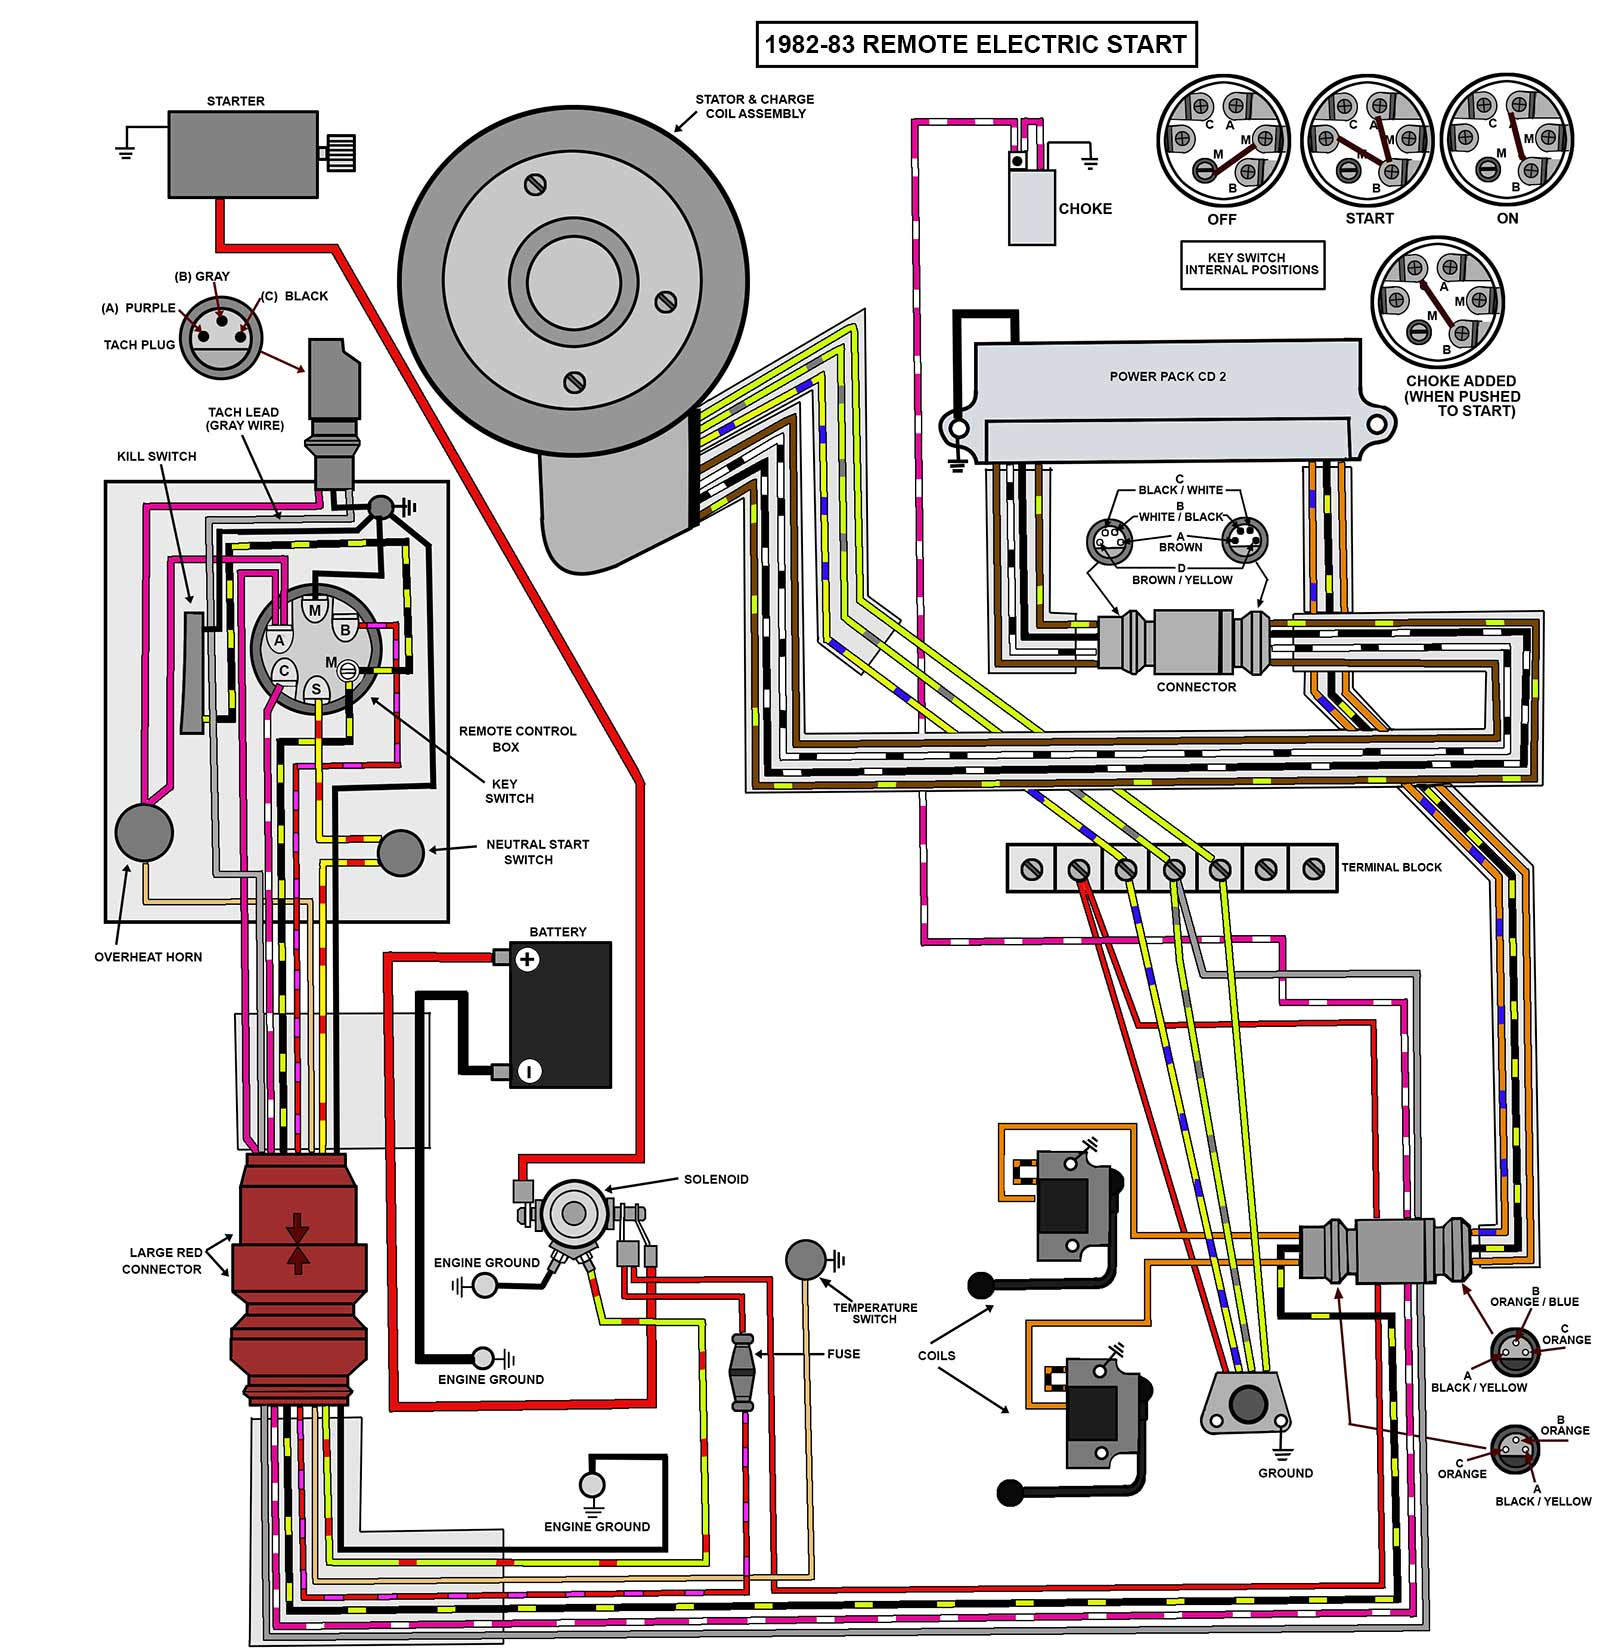 25_35_82 83_elec remote mastertech marine evinrude johnson outboard wiring diagrams  at eliteediting.co